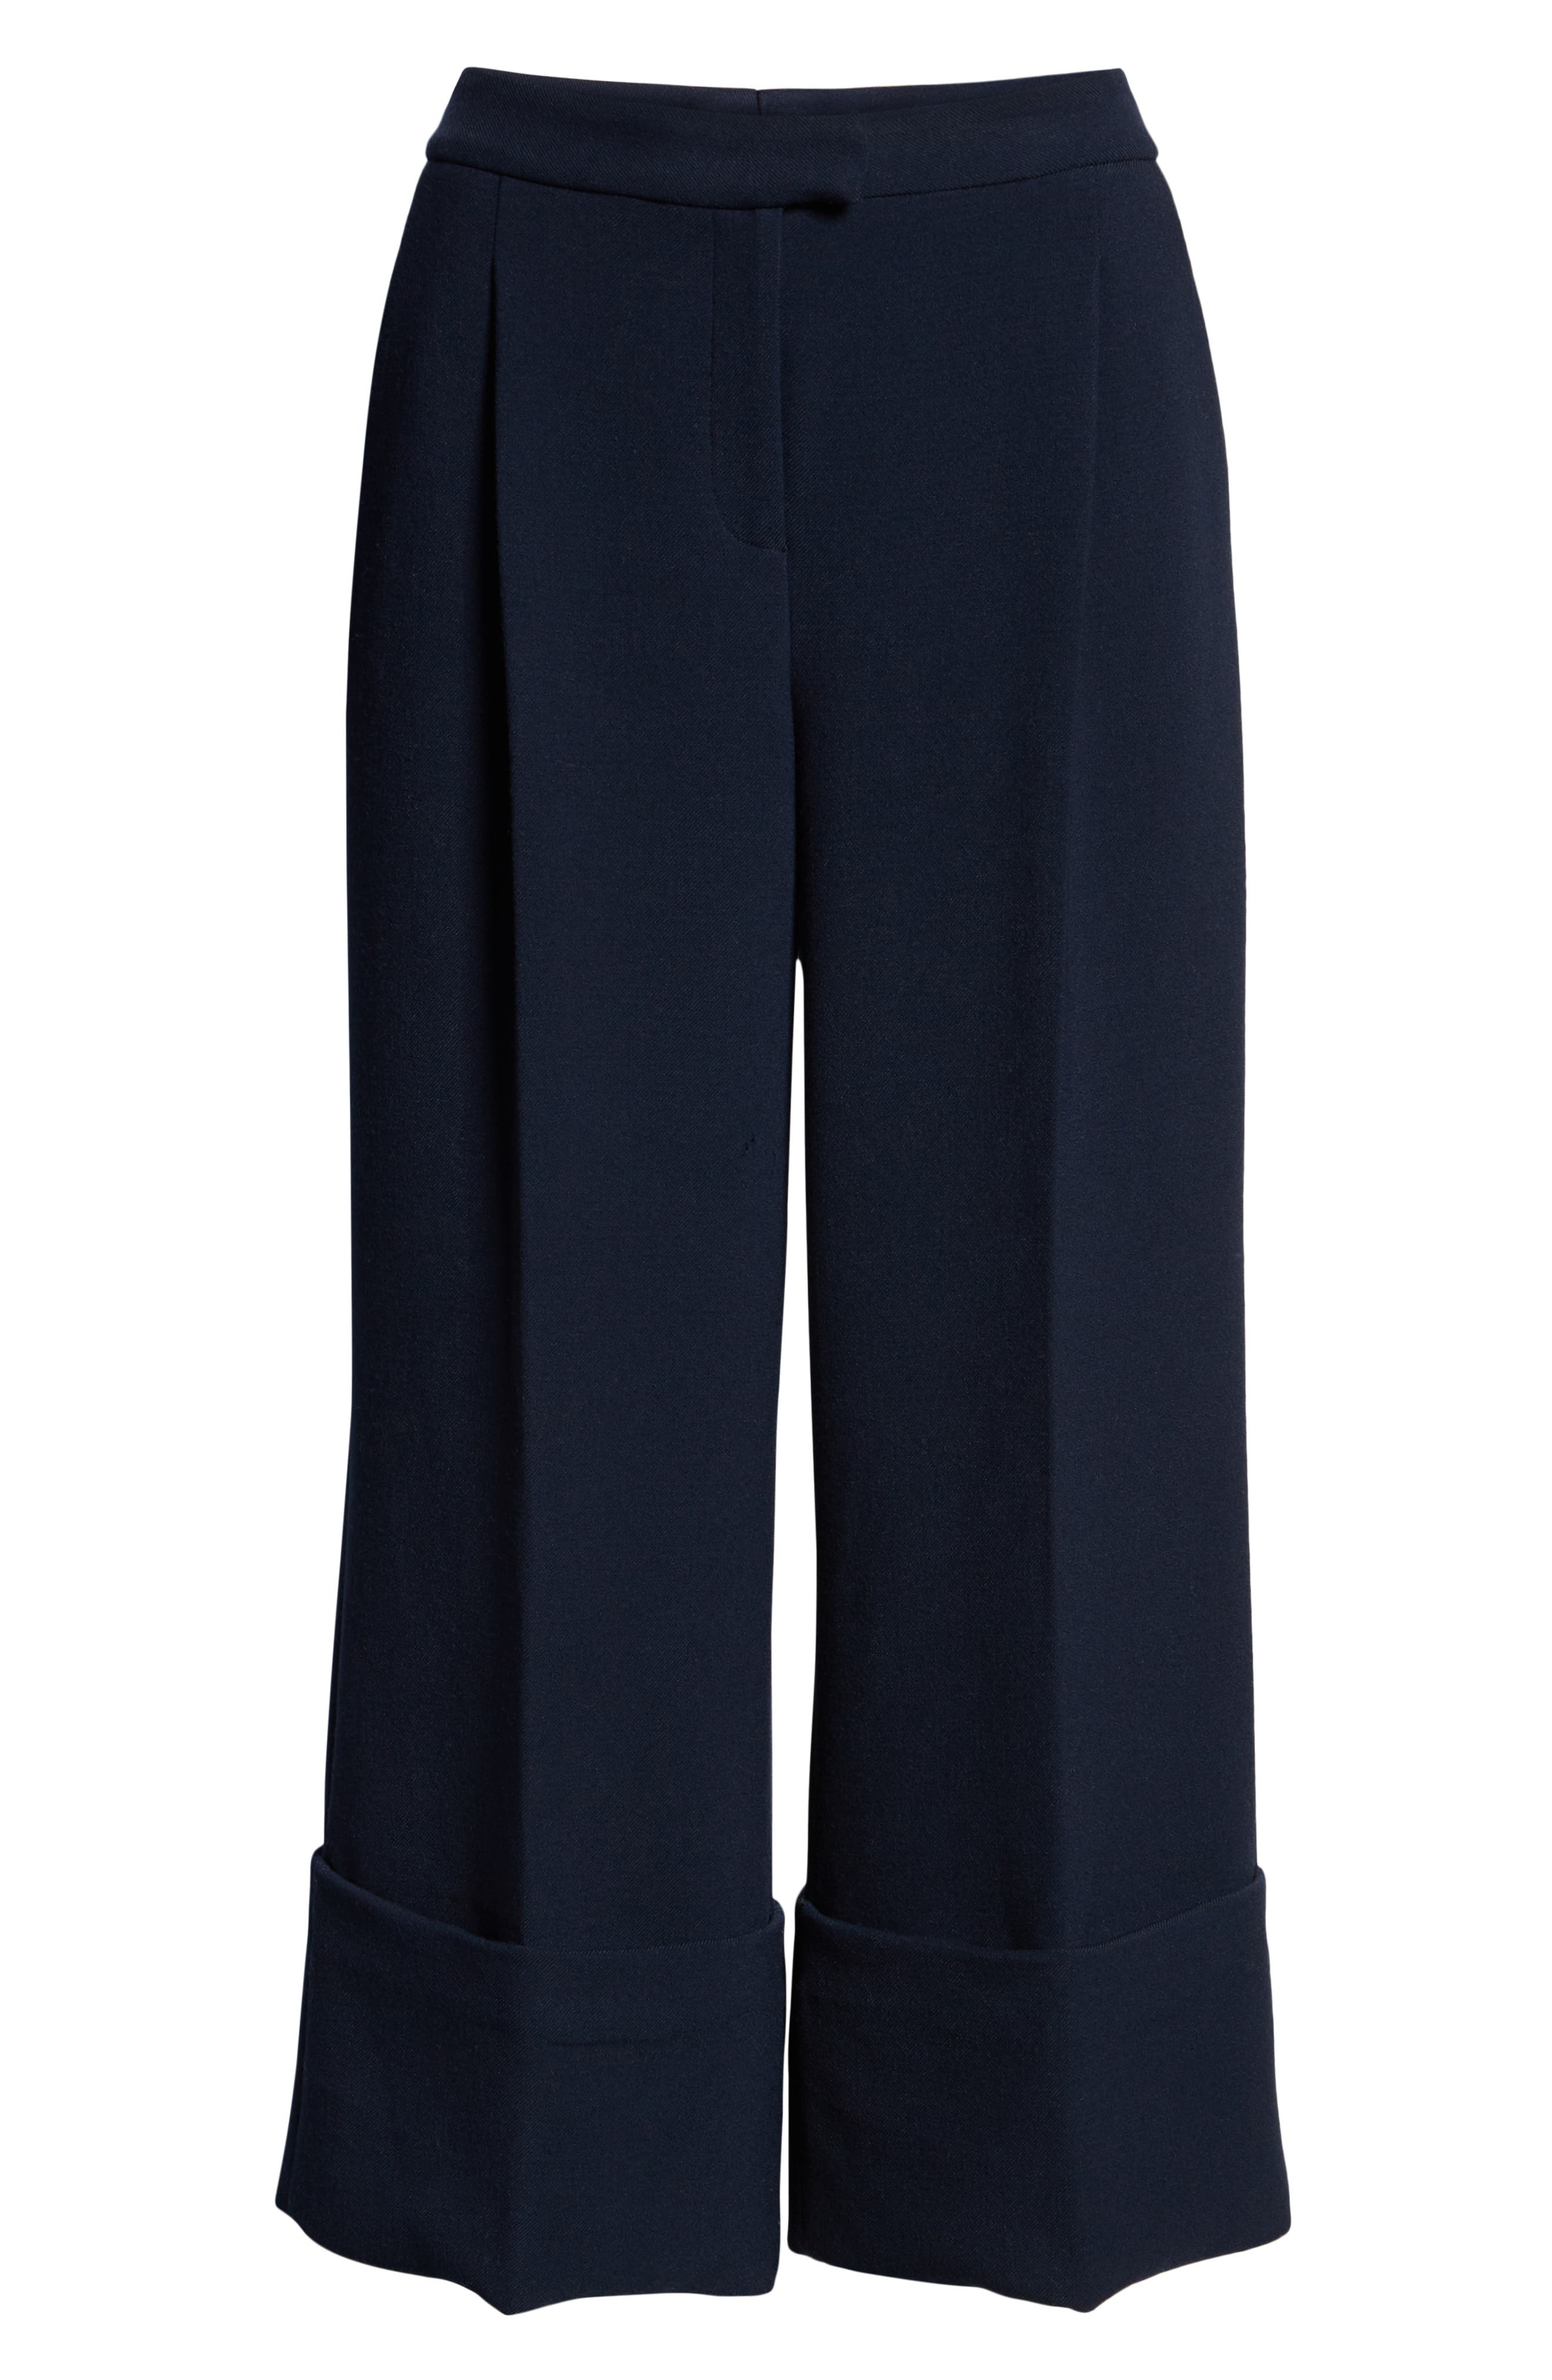 HALOGEN<SUP>®</SUP>,                             x Atlantic-Pacific High Waist Wide Cuff Ankle Pants,                             Alternate thumbnail 8, color,                             410